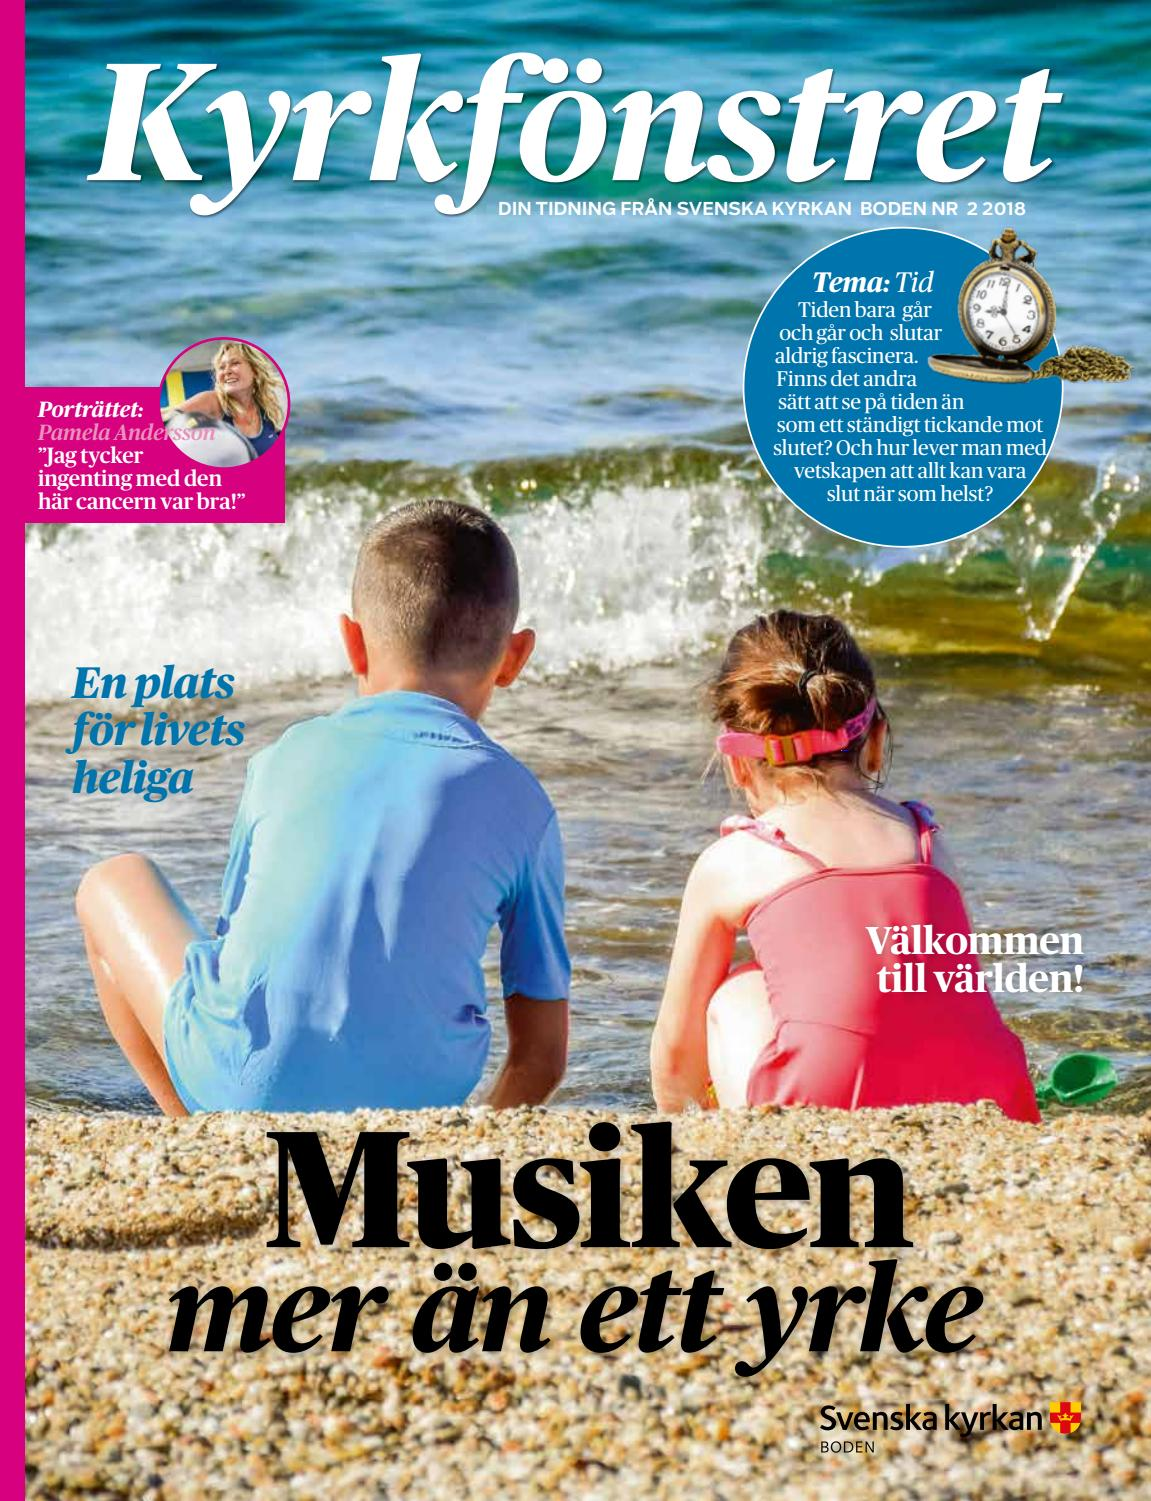 Kyrkfönstret Boden maj 2018 by Berling Media - issuu e9121e4b52e76